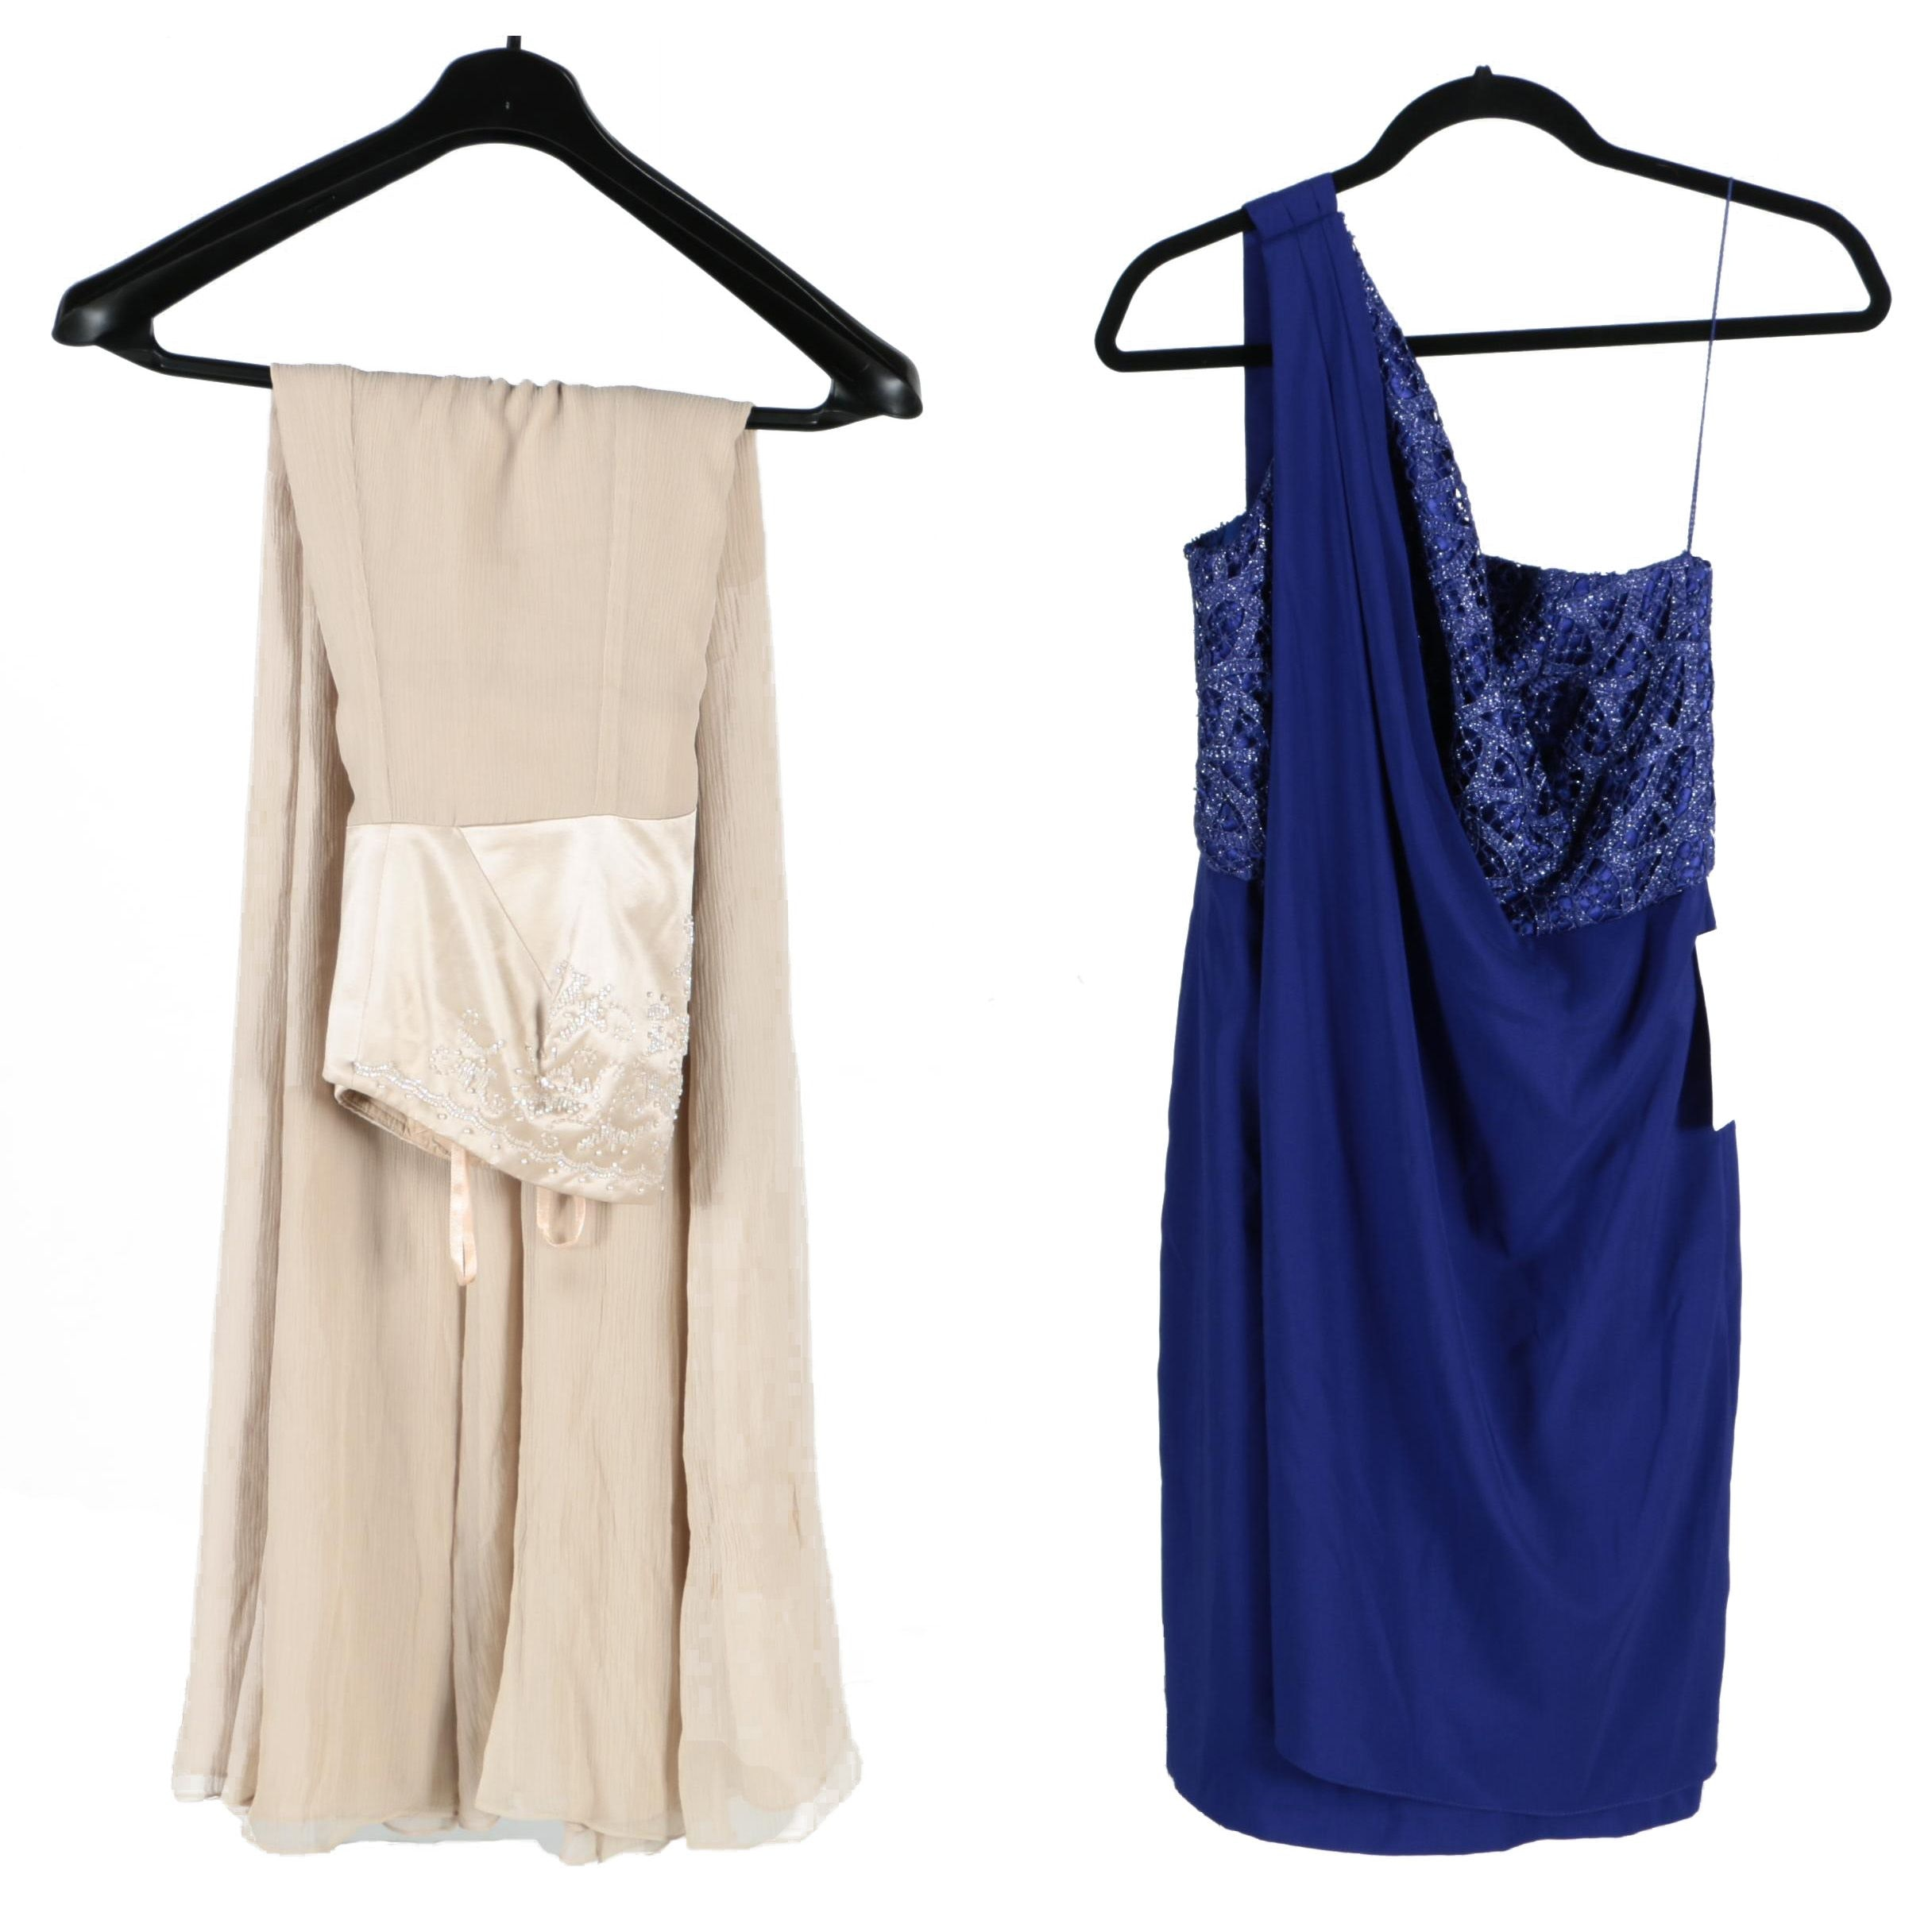 Patra One-Shoulder Cocktail Dress and Talbots Strapless Gown